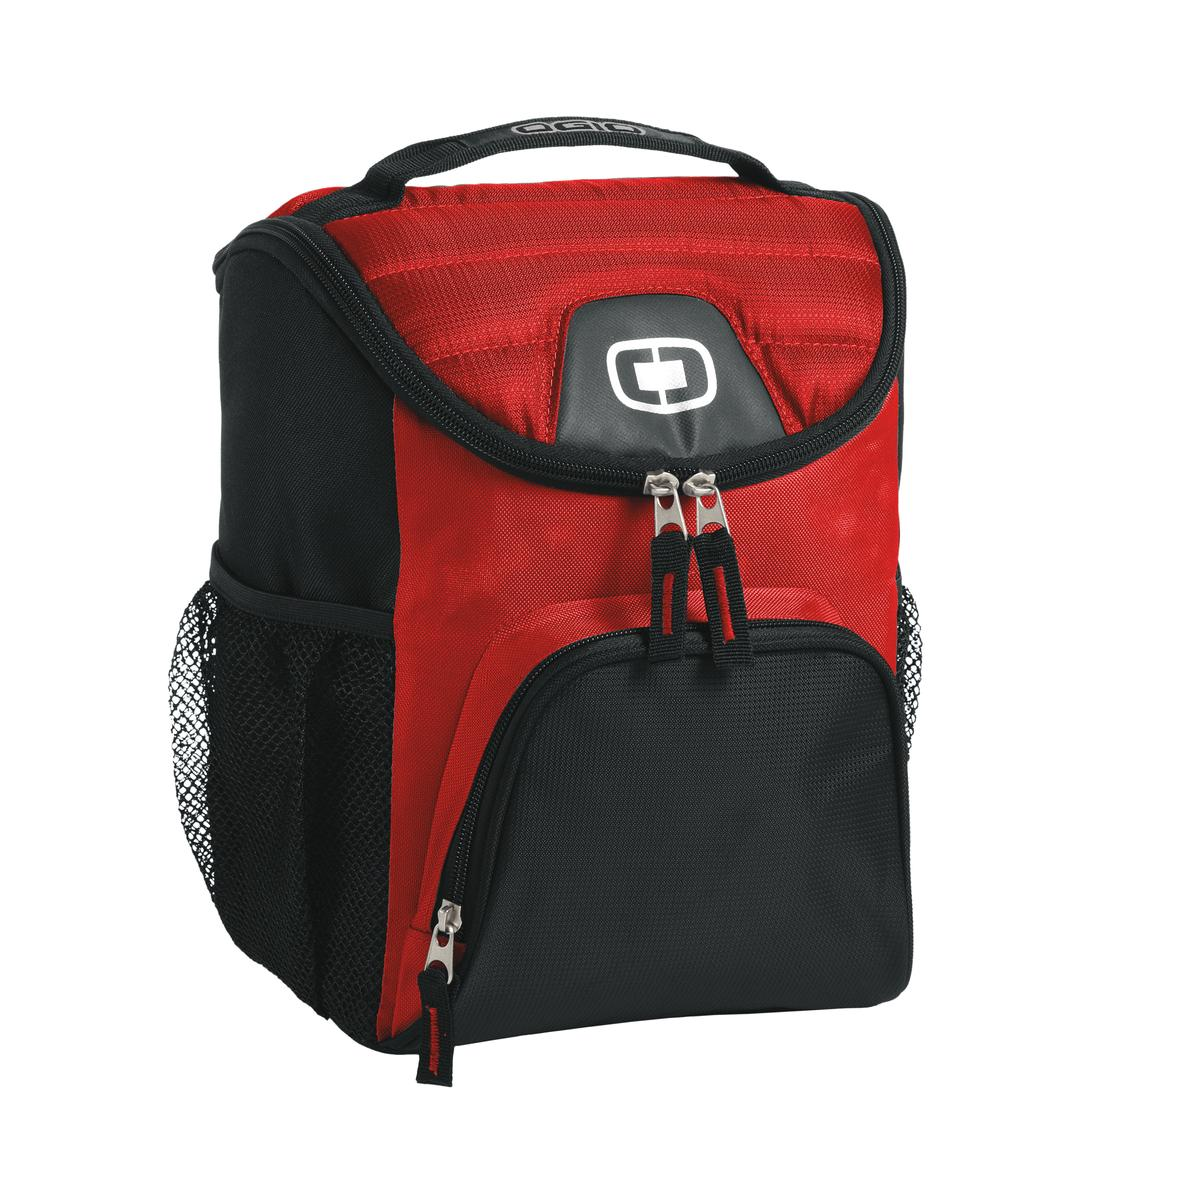 OGIO ®  - Chill 6-12 Can Cooler. 408112 - Red